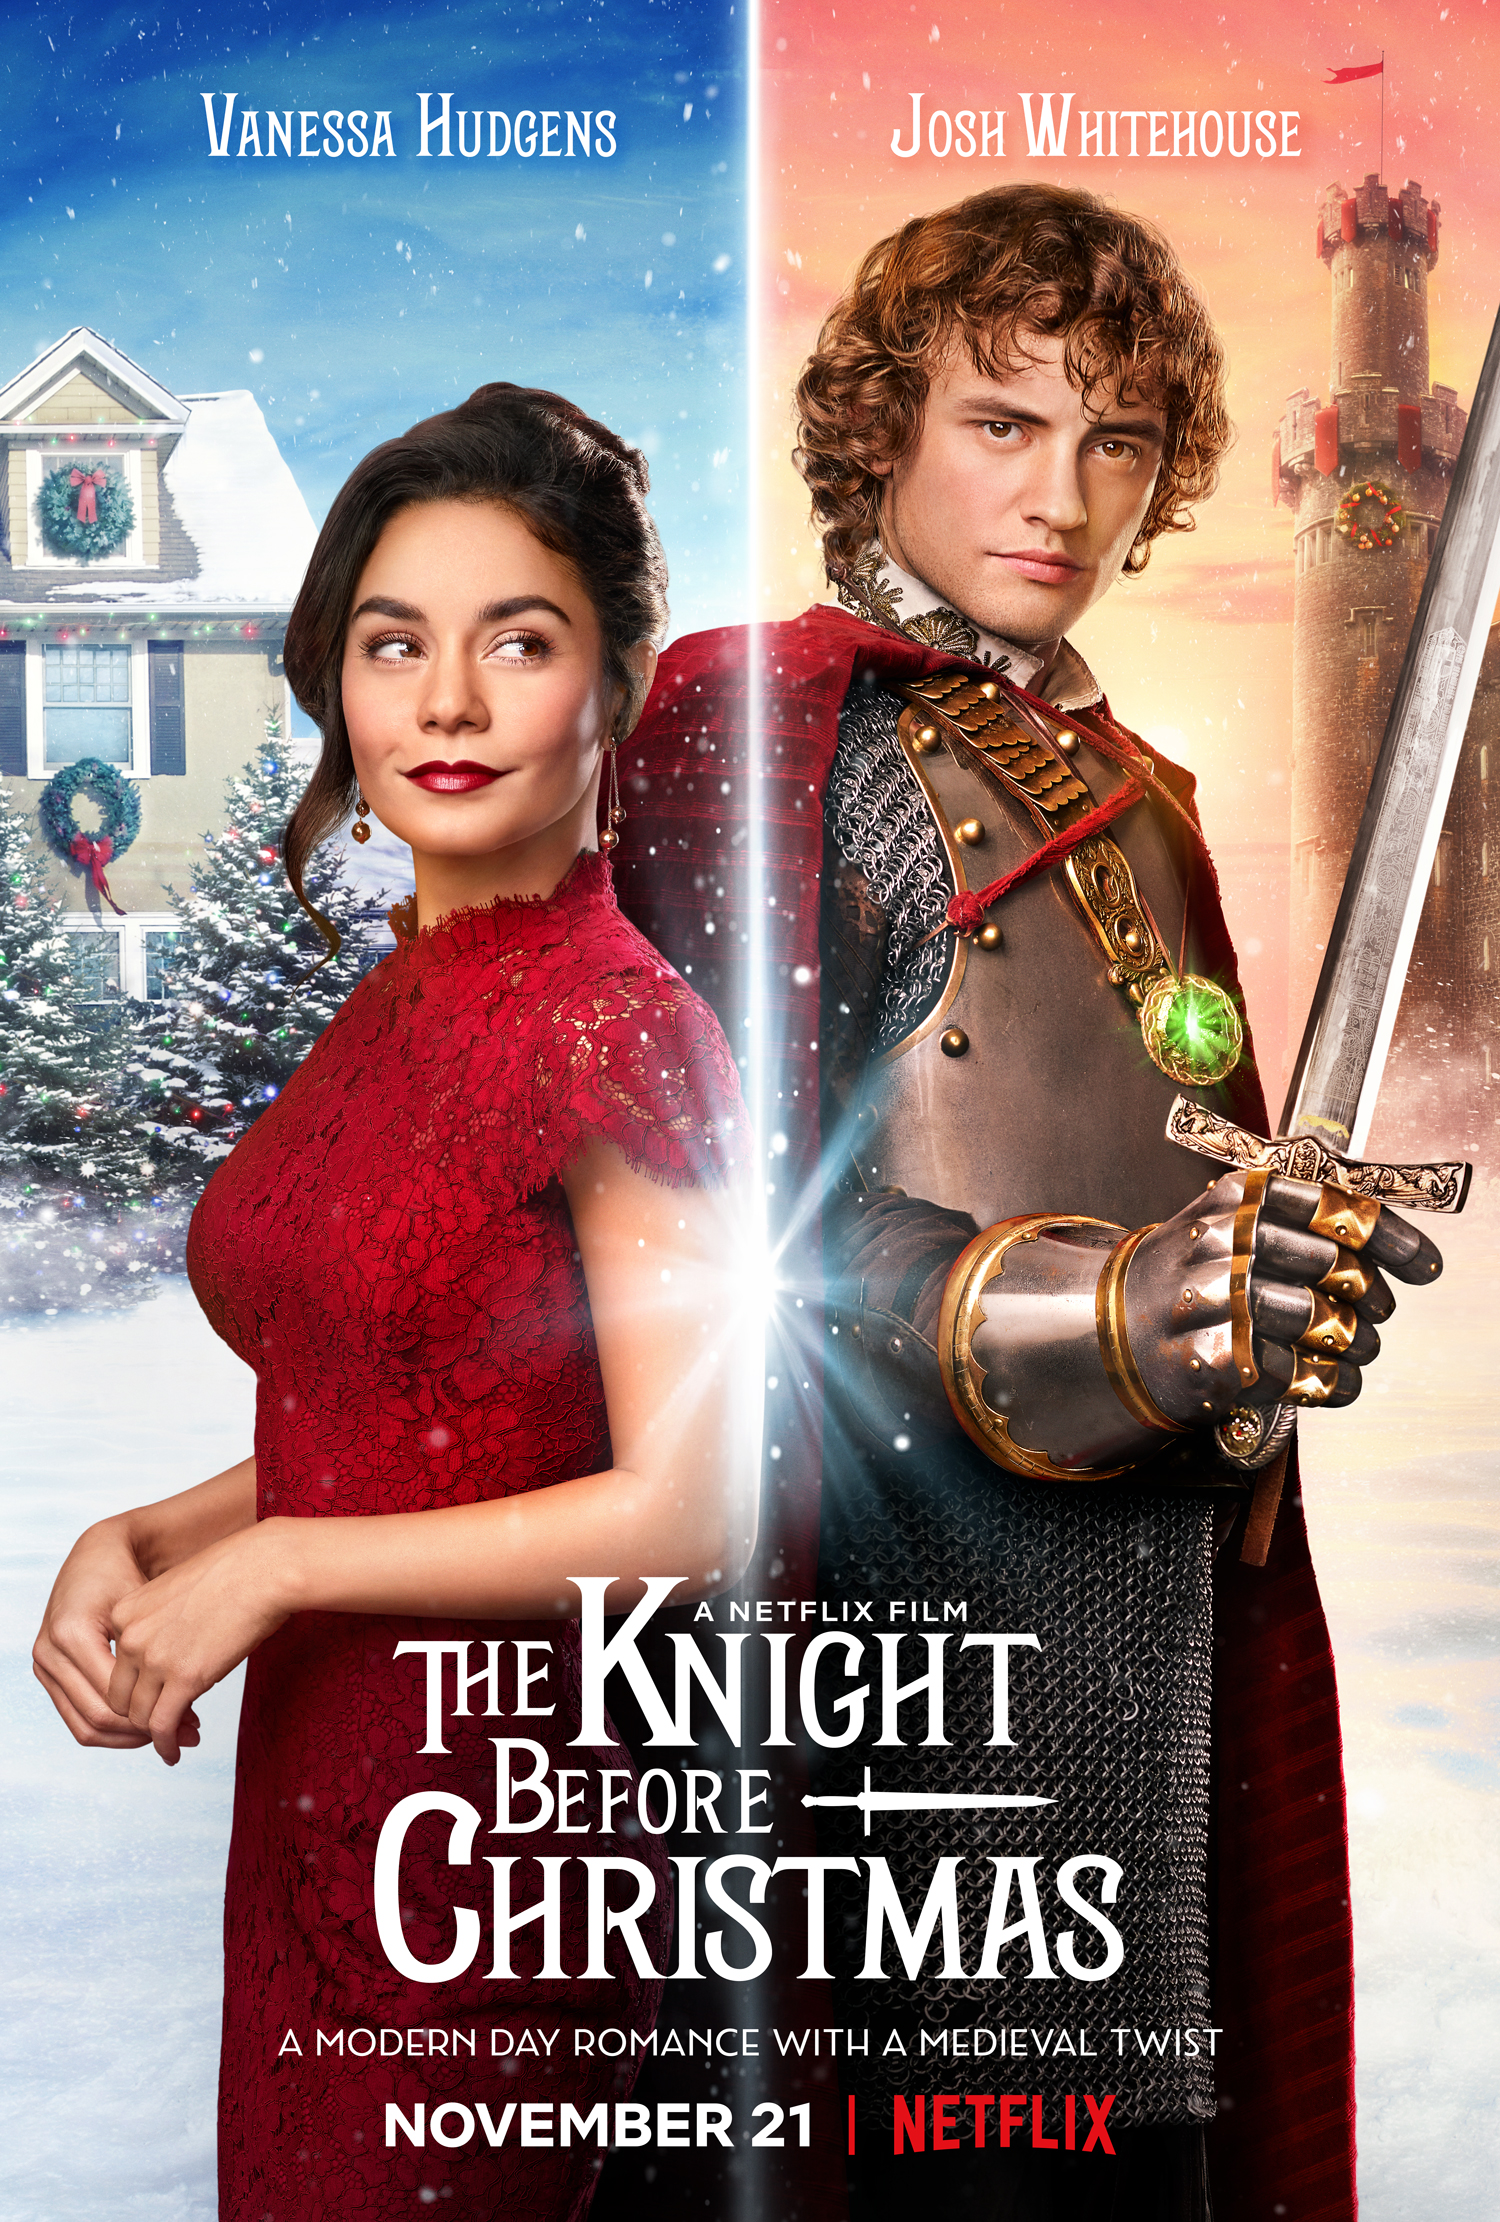 The Knight Before Christmas (Netflix, 2019).